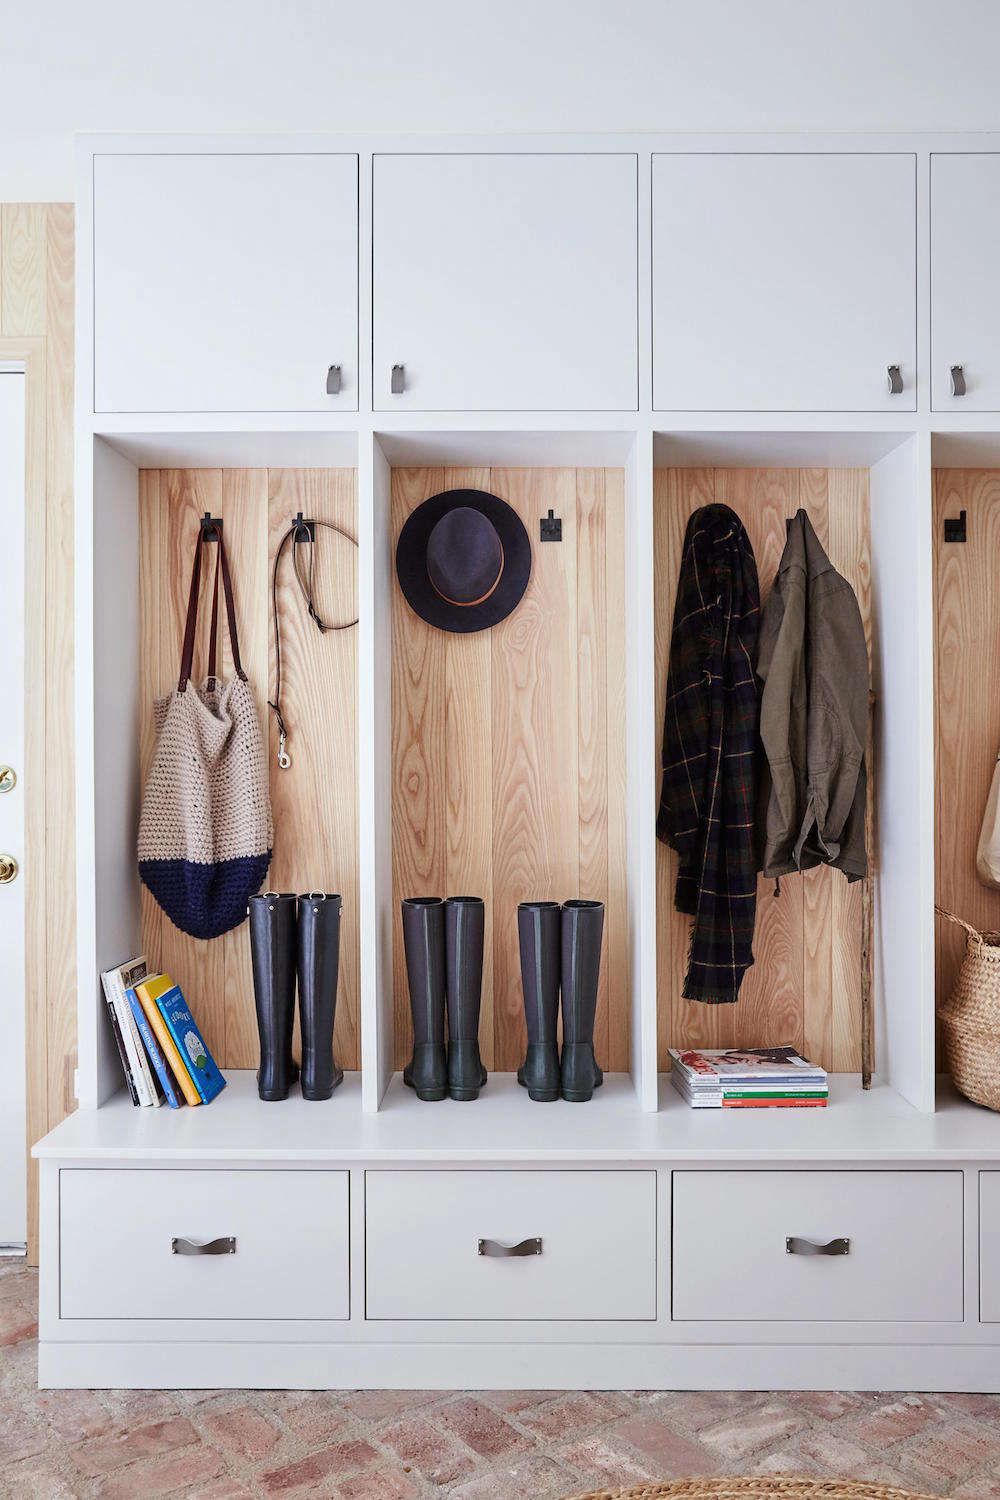 The Organized Home cover image